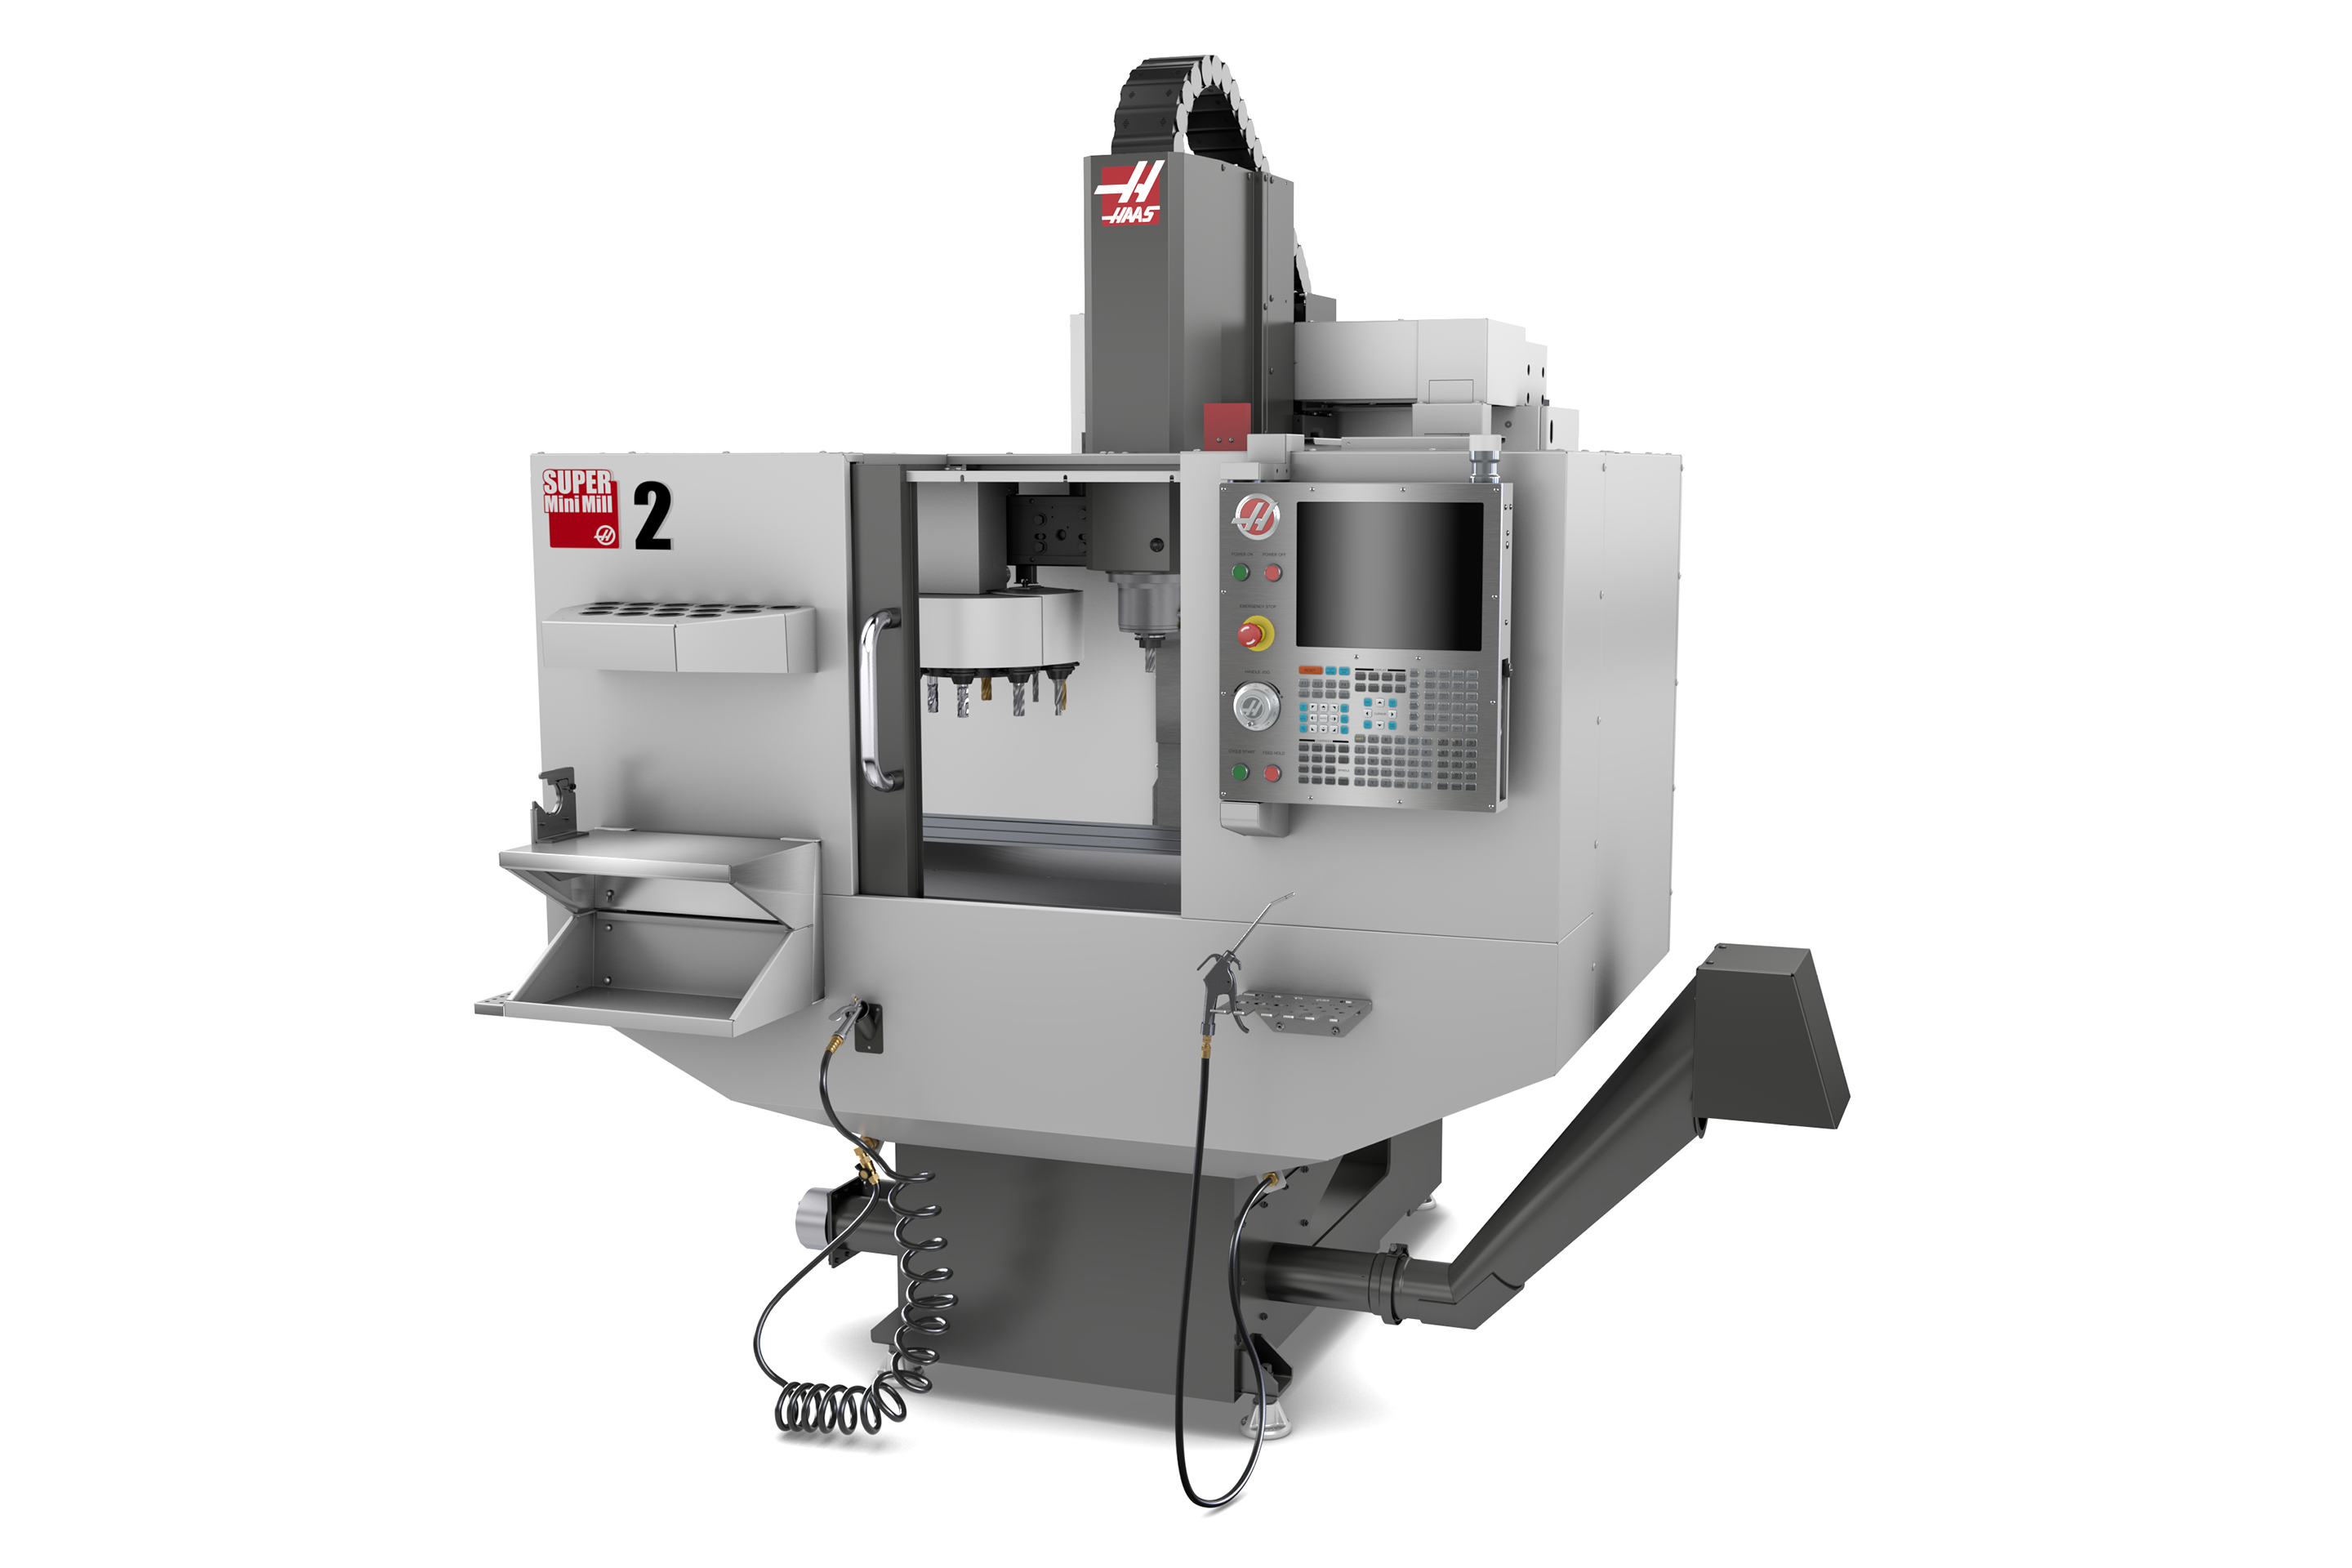 Convenient device for the preparation of rolls - a machine for twisting